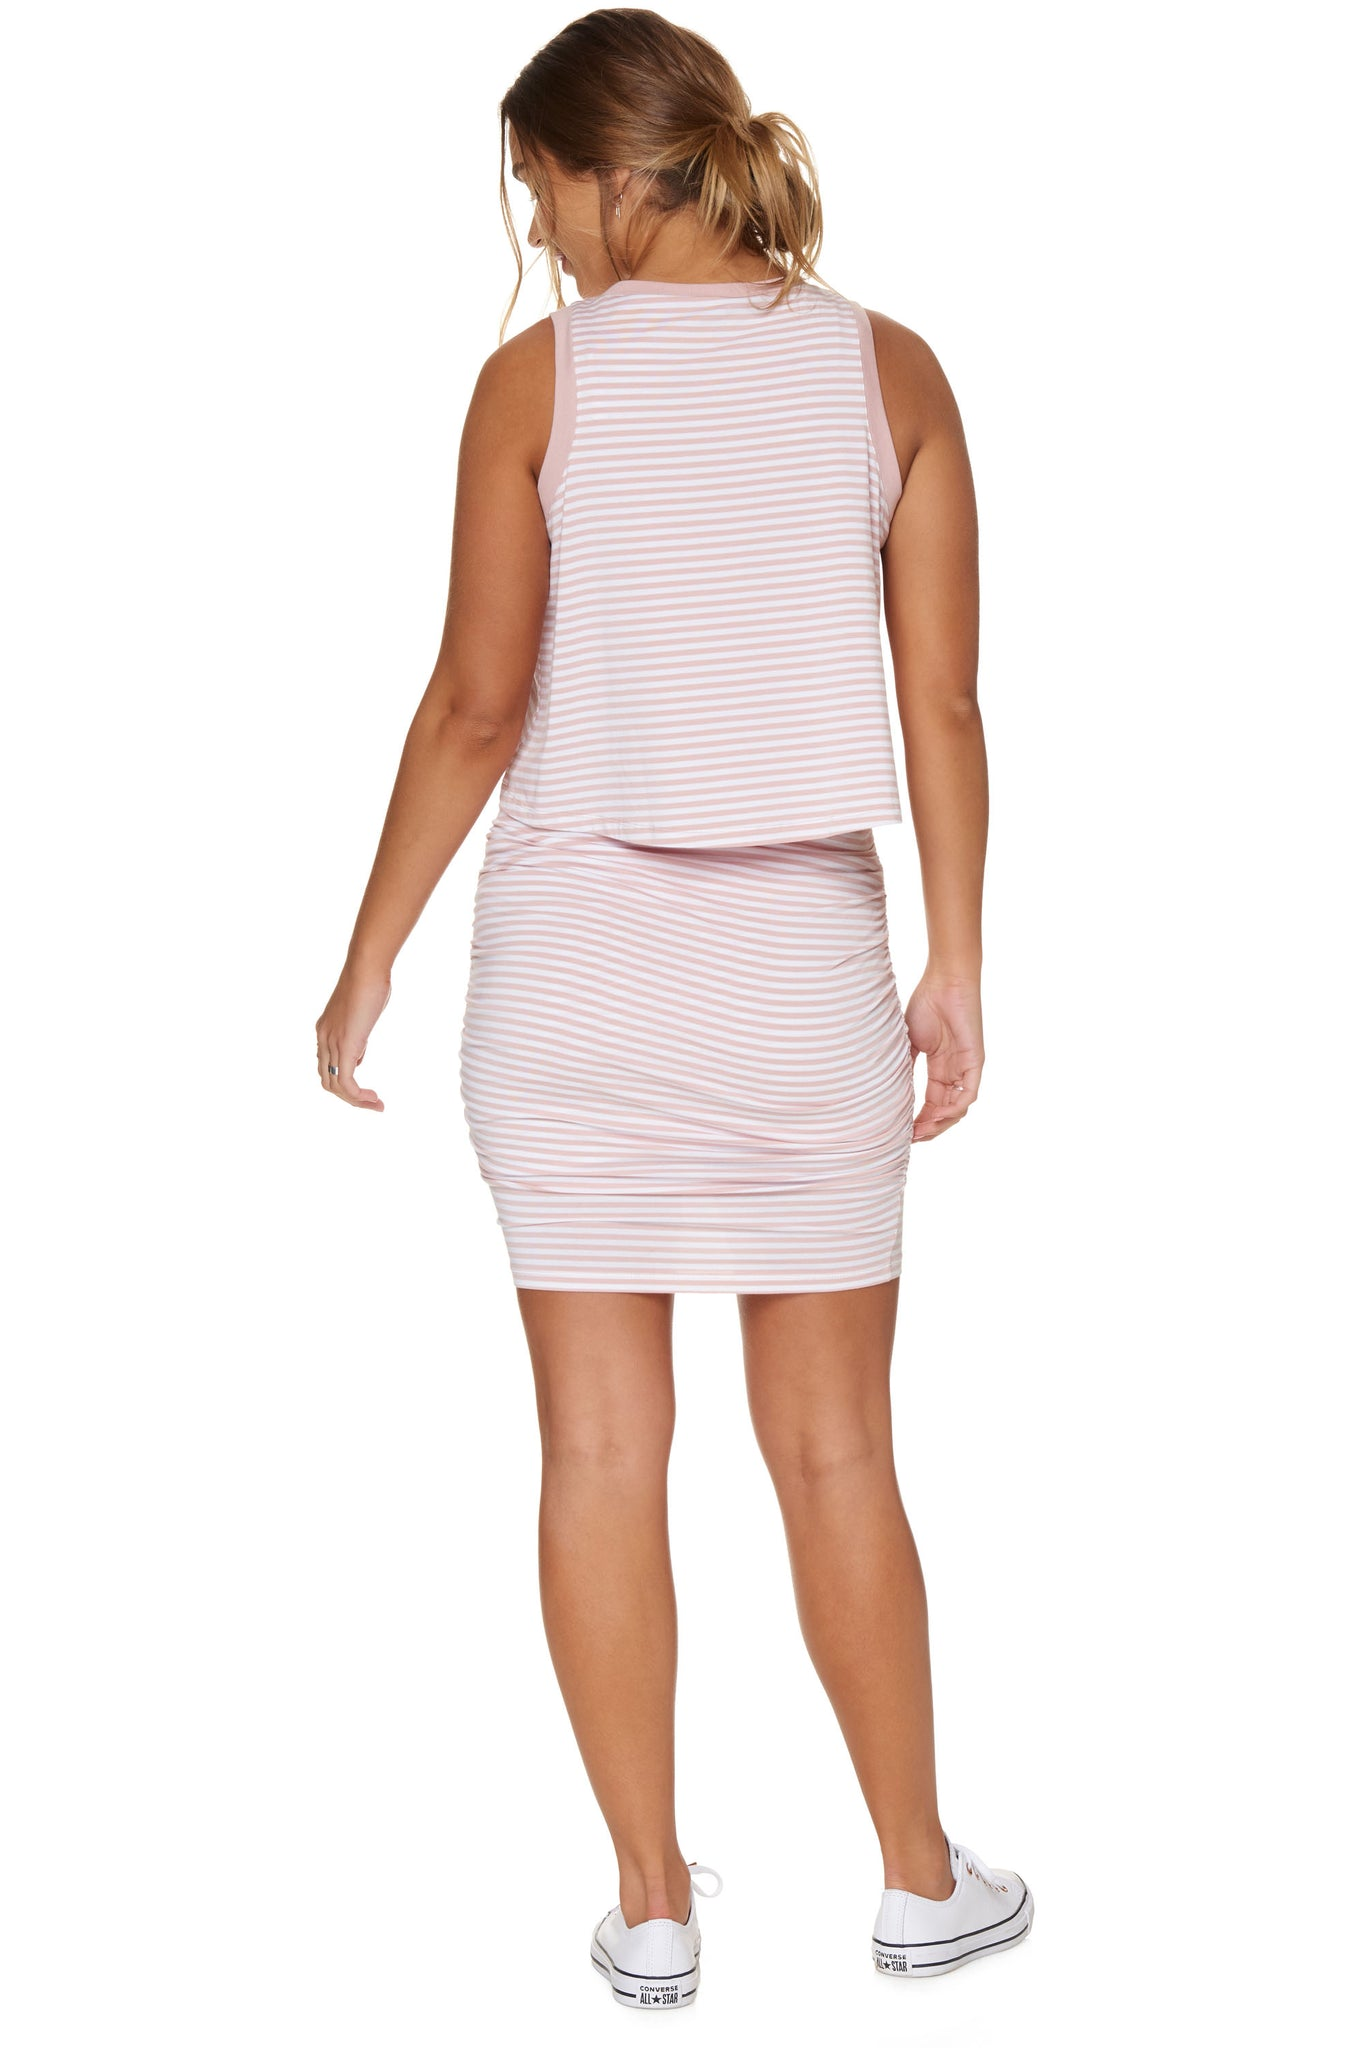 Stripe nursing & maternity dress - pink 3